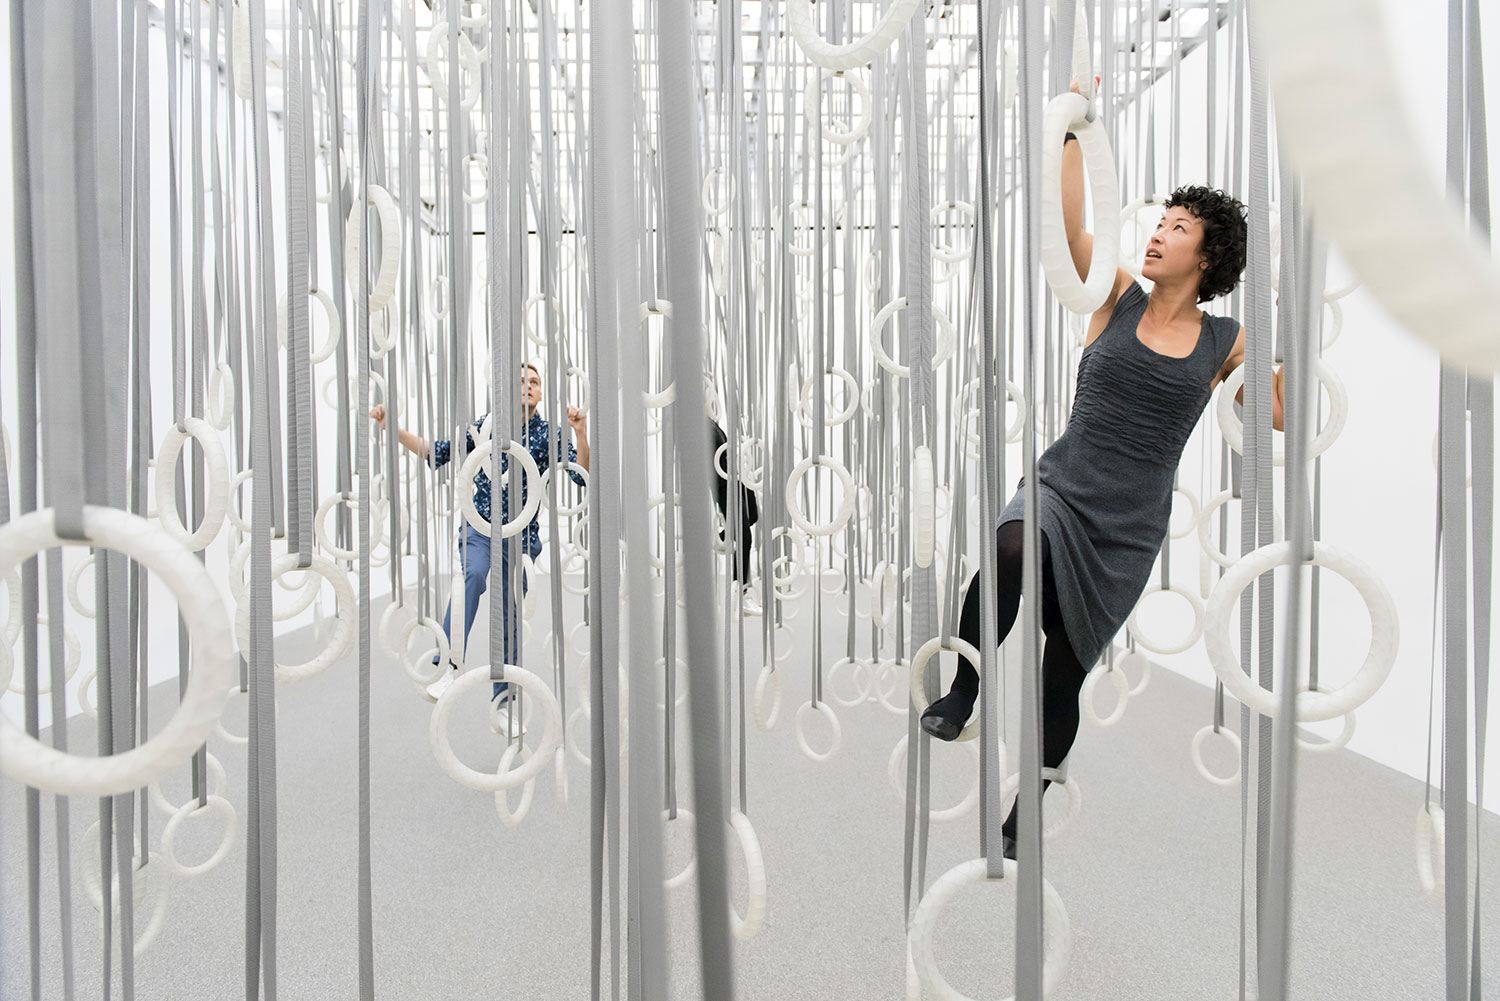 William Forsythe, The Fact of Matter, 2009. Courtesy of the artist and Gagosian, New York. Photography by Liza Voll © William Forsythe